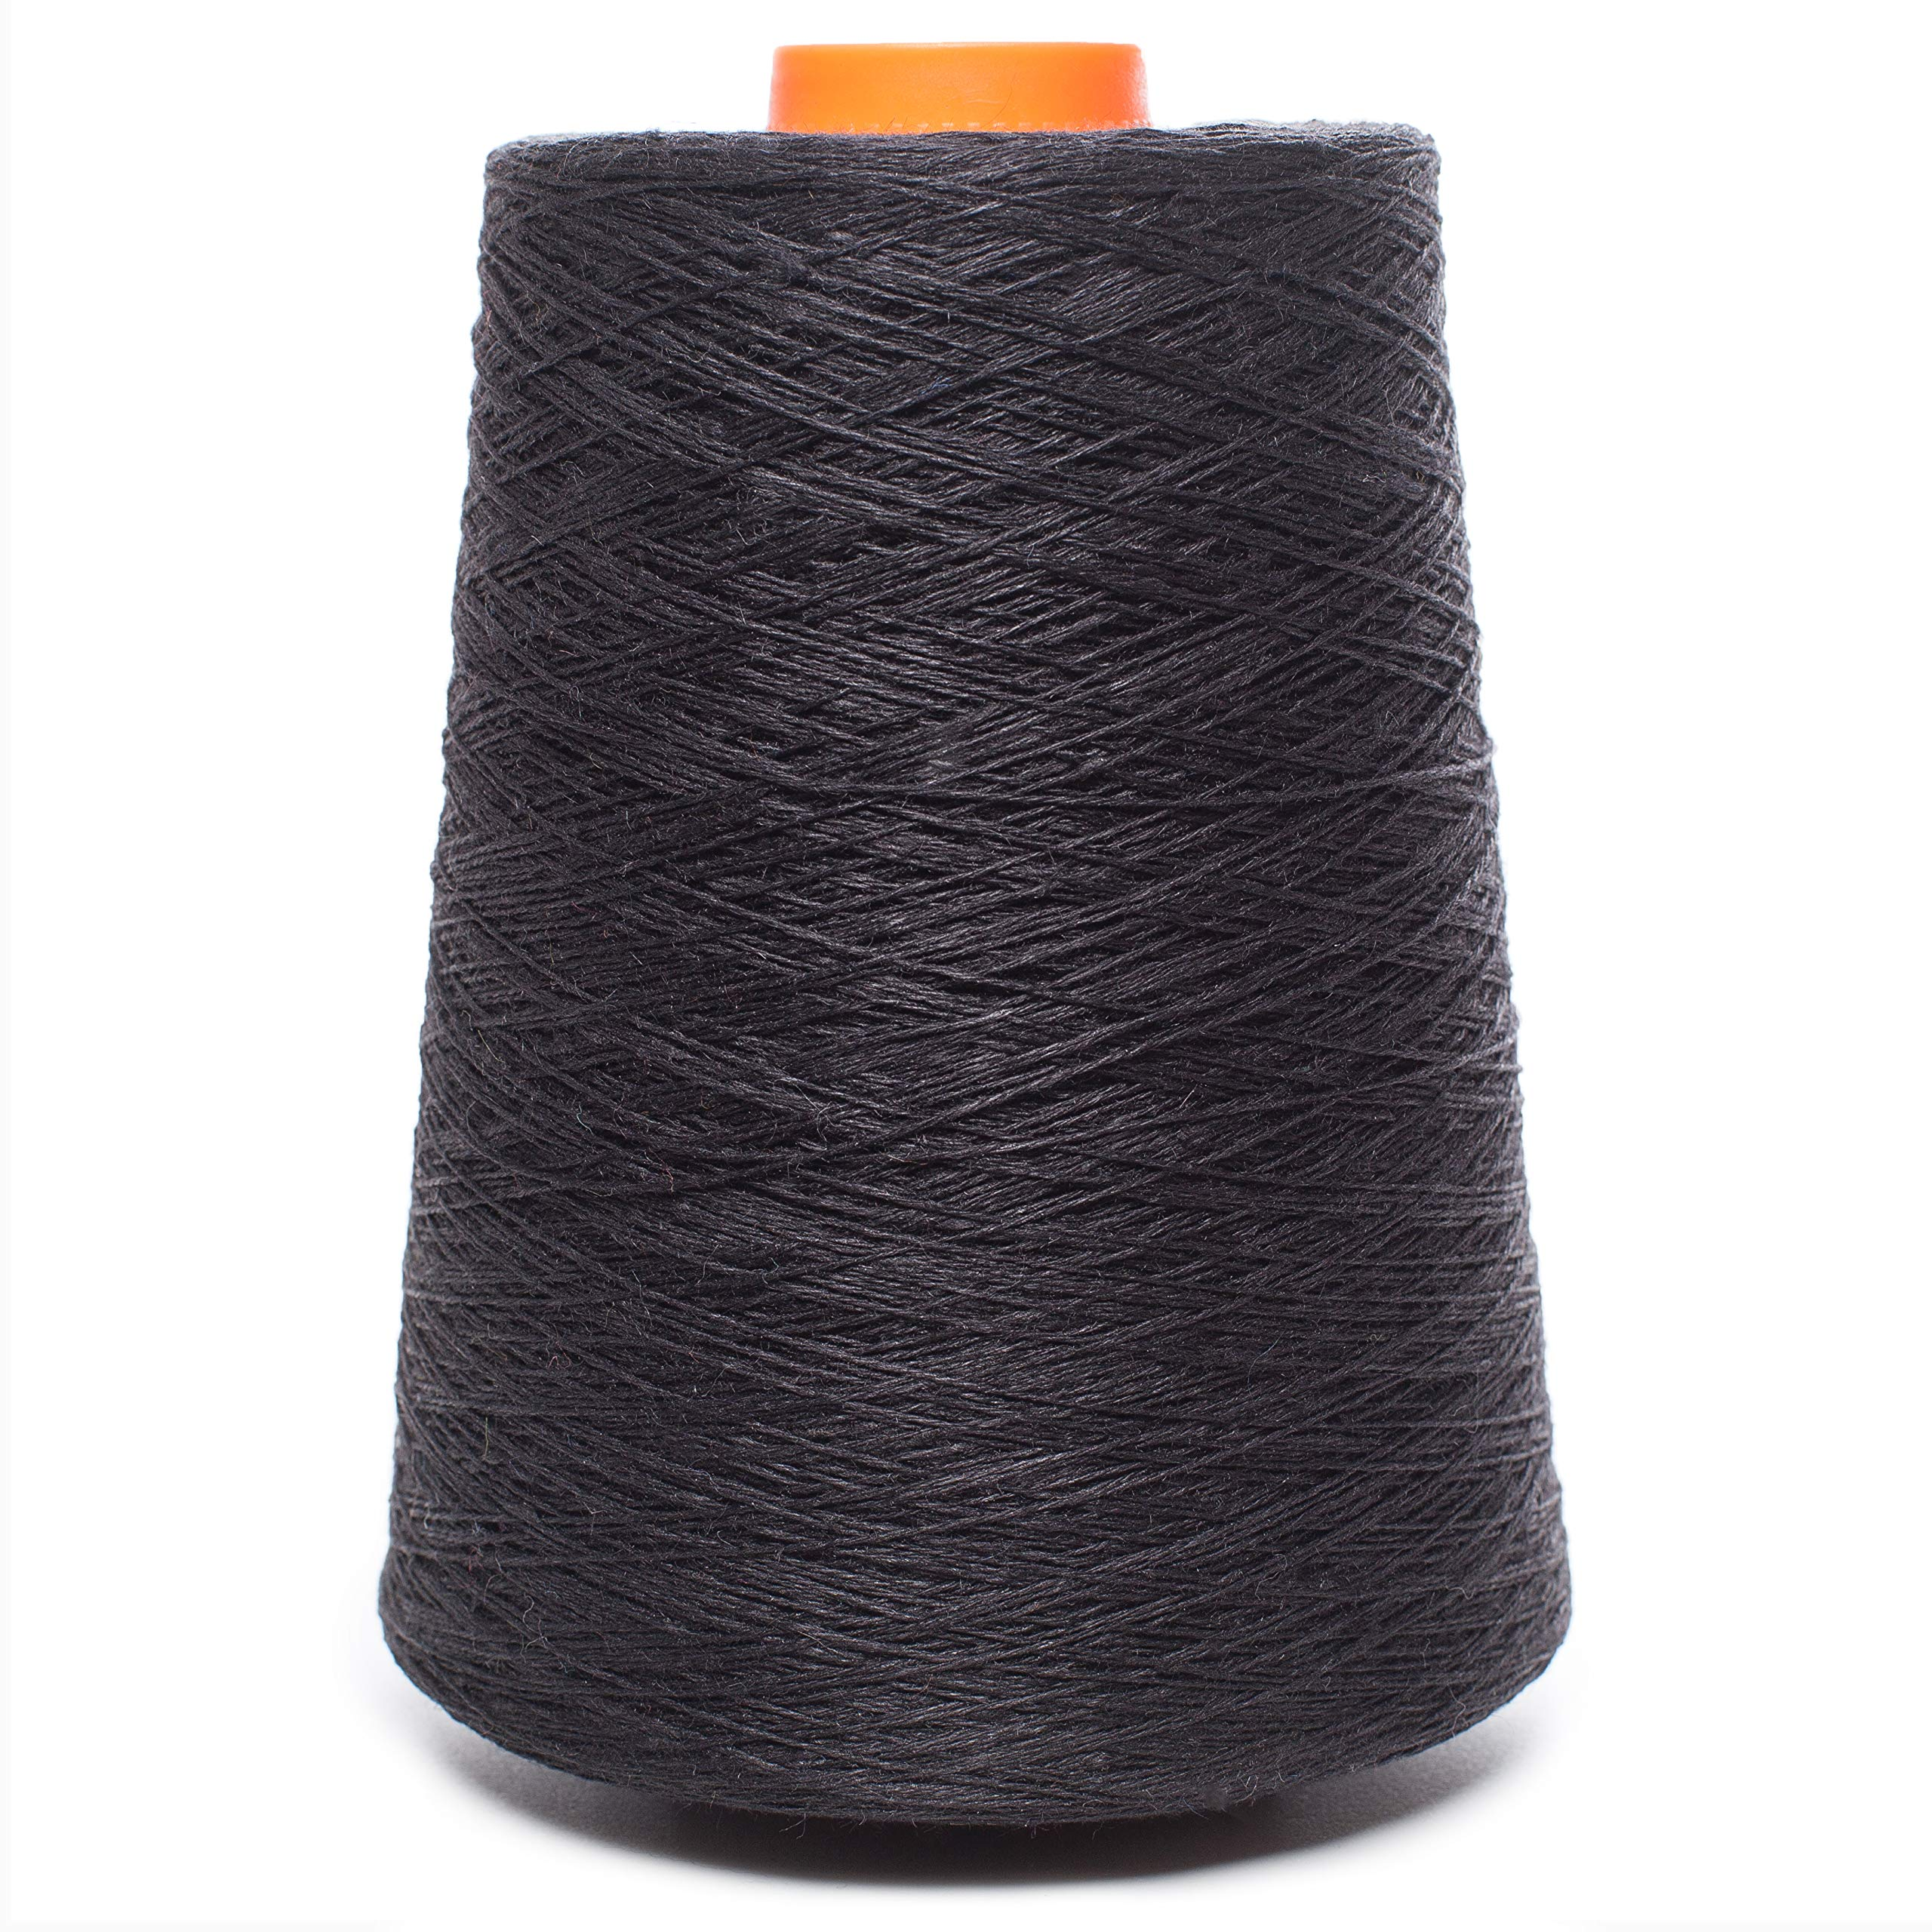 Linen Yarn Cone - 100% Flax Linen - 1 LBS - DARK GREY - Graphite Color - 3 PLY - Sewing Weaving Crochet Embroidering - 3.000 yards